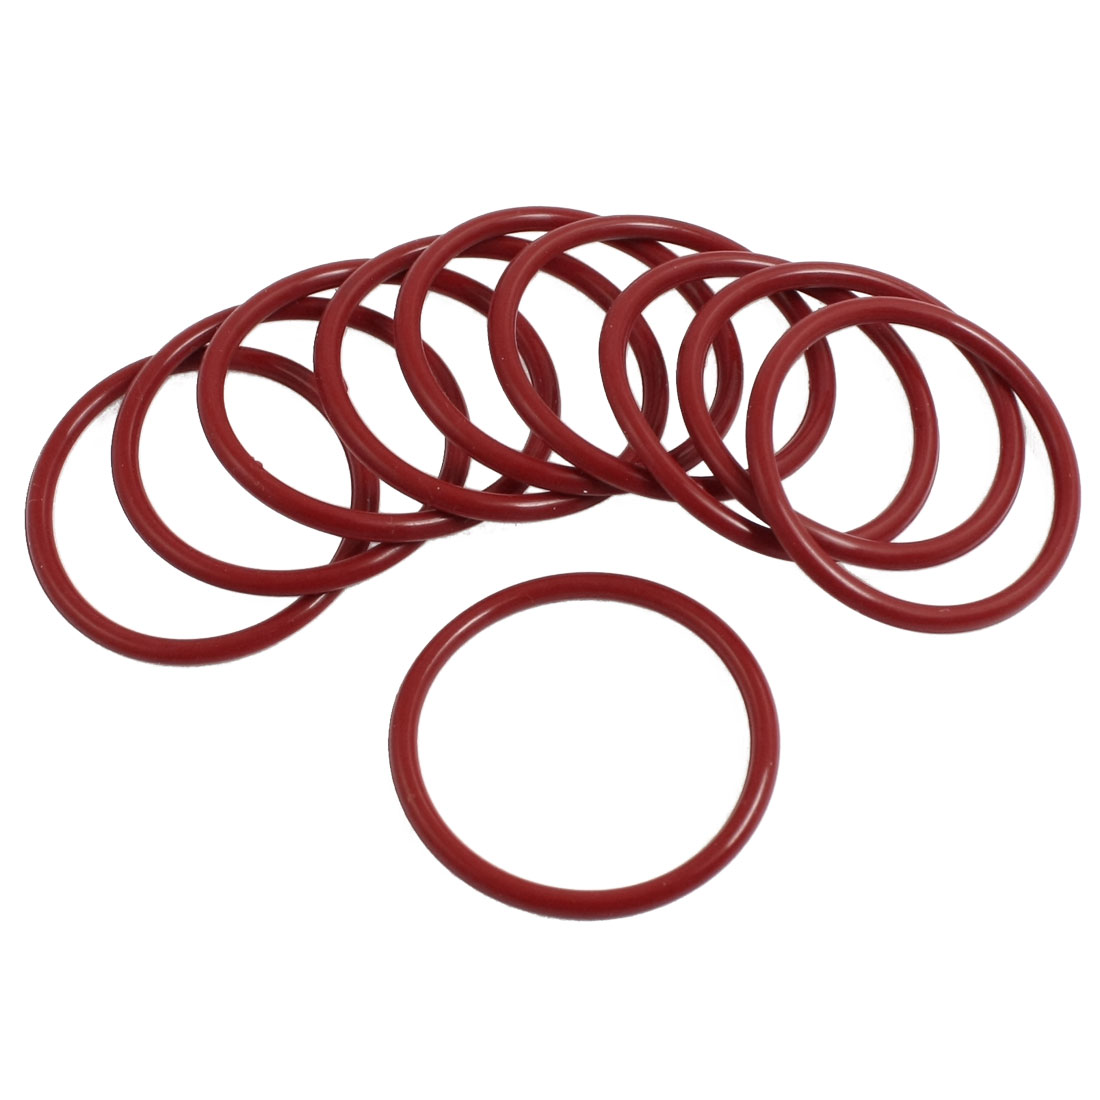 10 Pcs 35mm Outside Dia 2.5mm Thick Industrial Rubber O Rings Seals